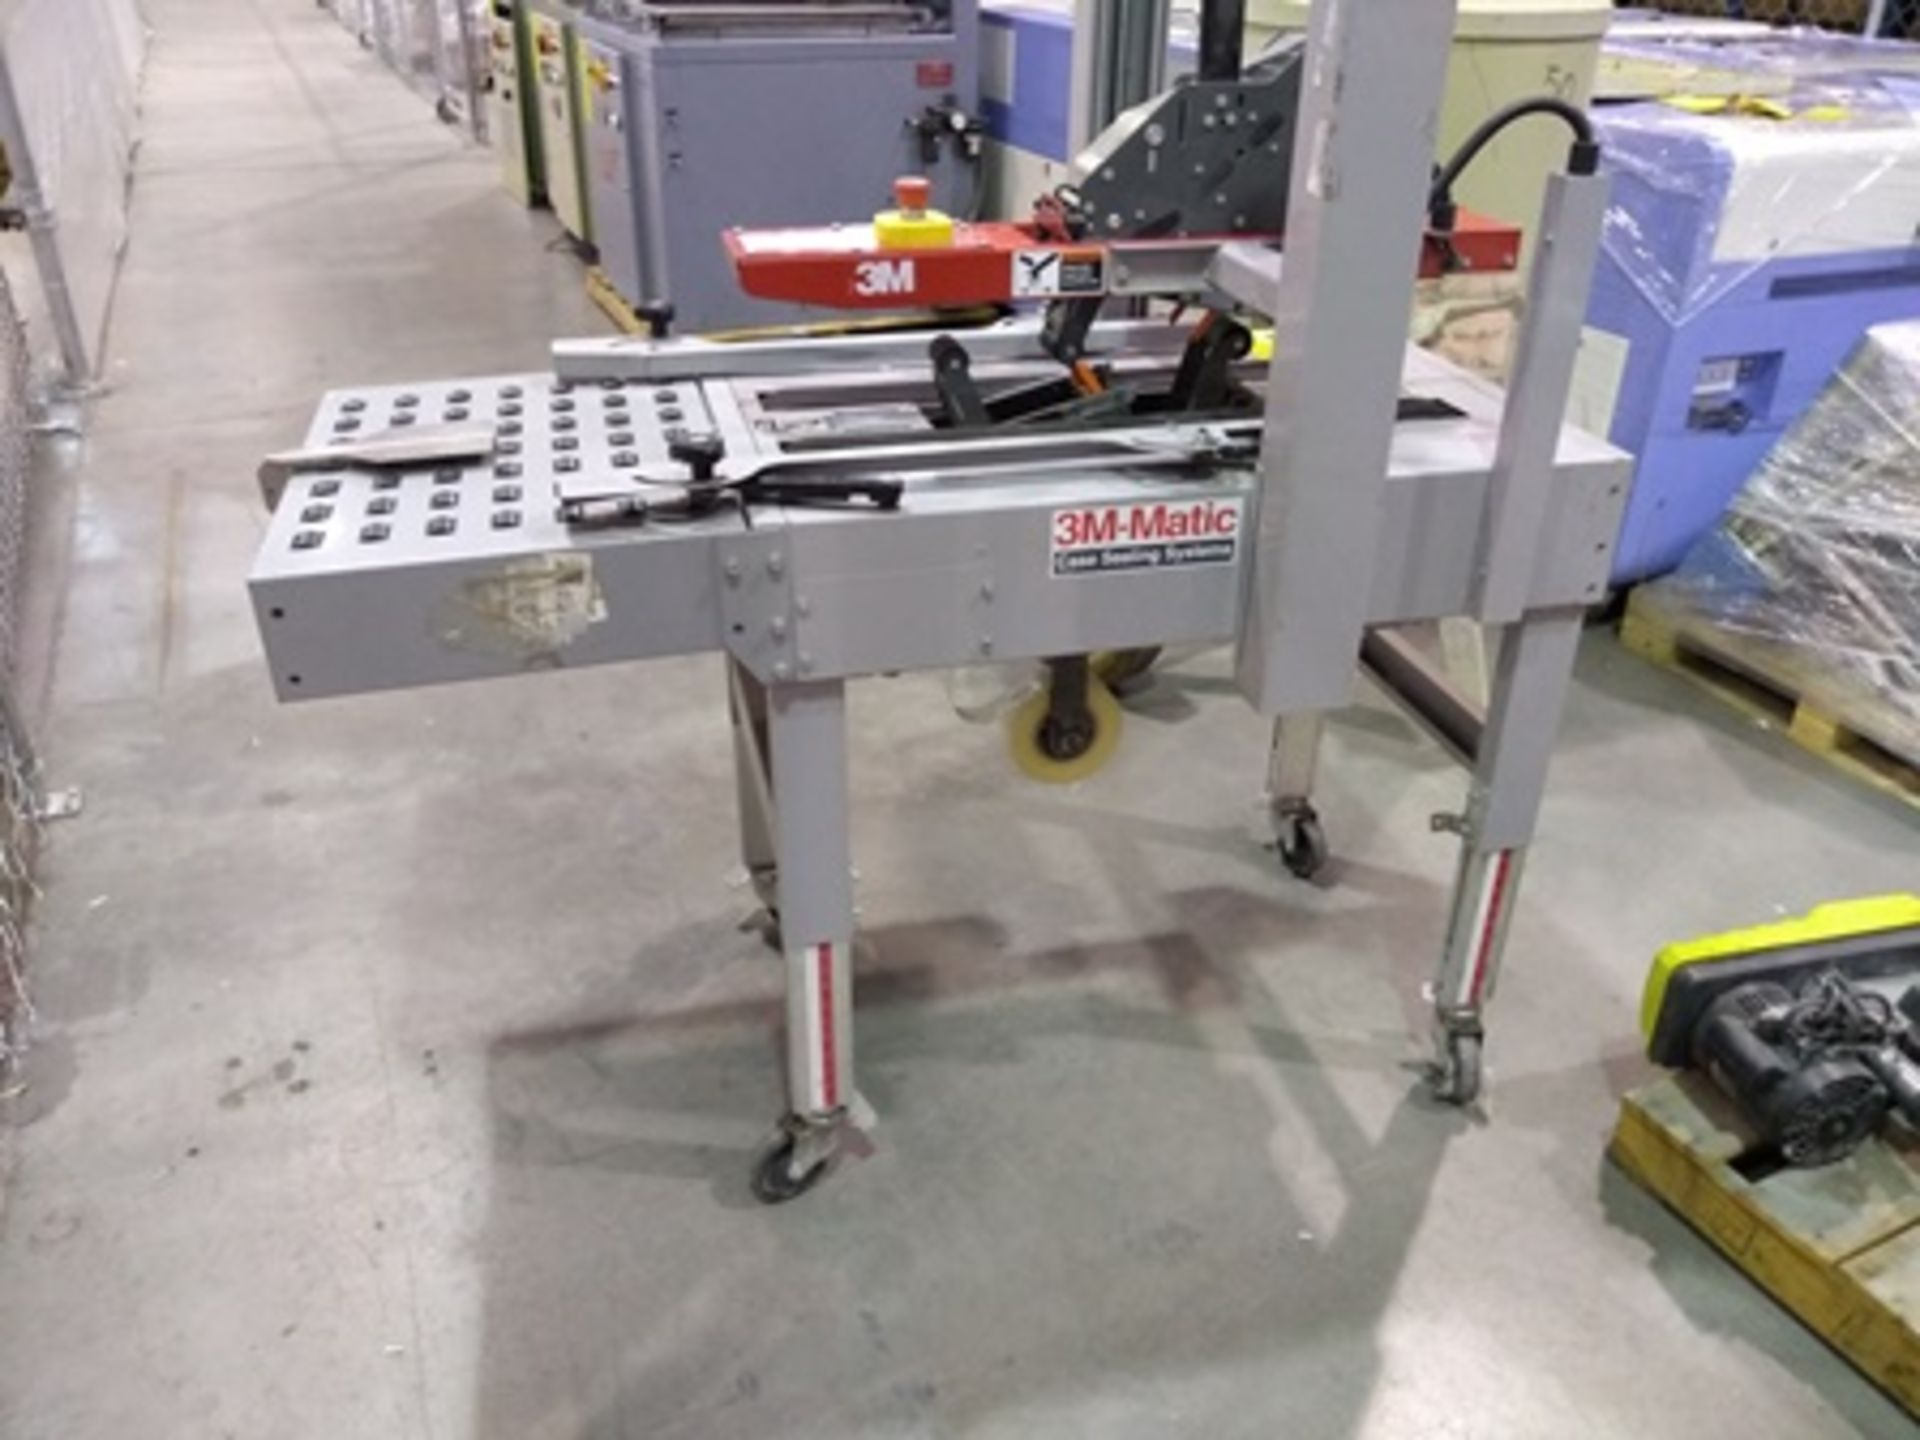 Lot 31 - 3M-Matic Case Sealing Systems, carton sealing machine mod. A20, serial number 51285, year 2015 …